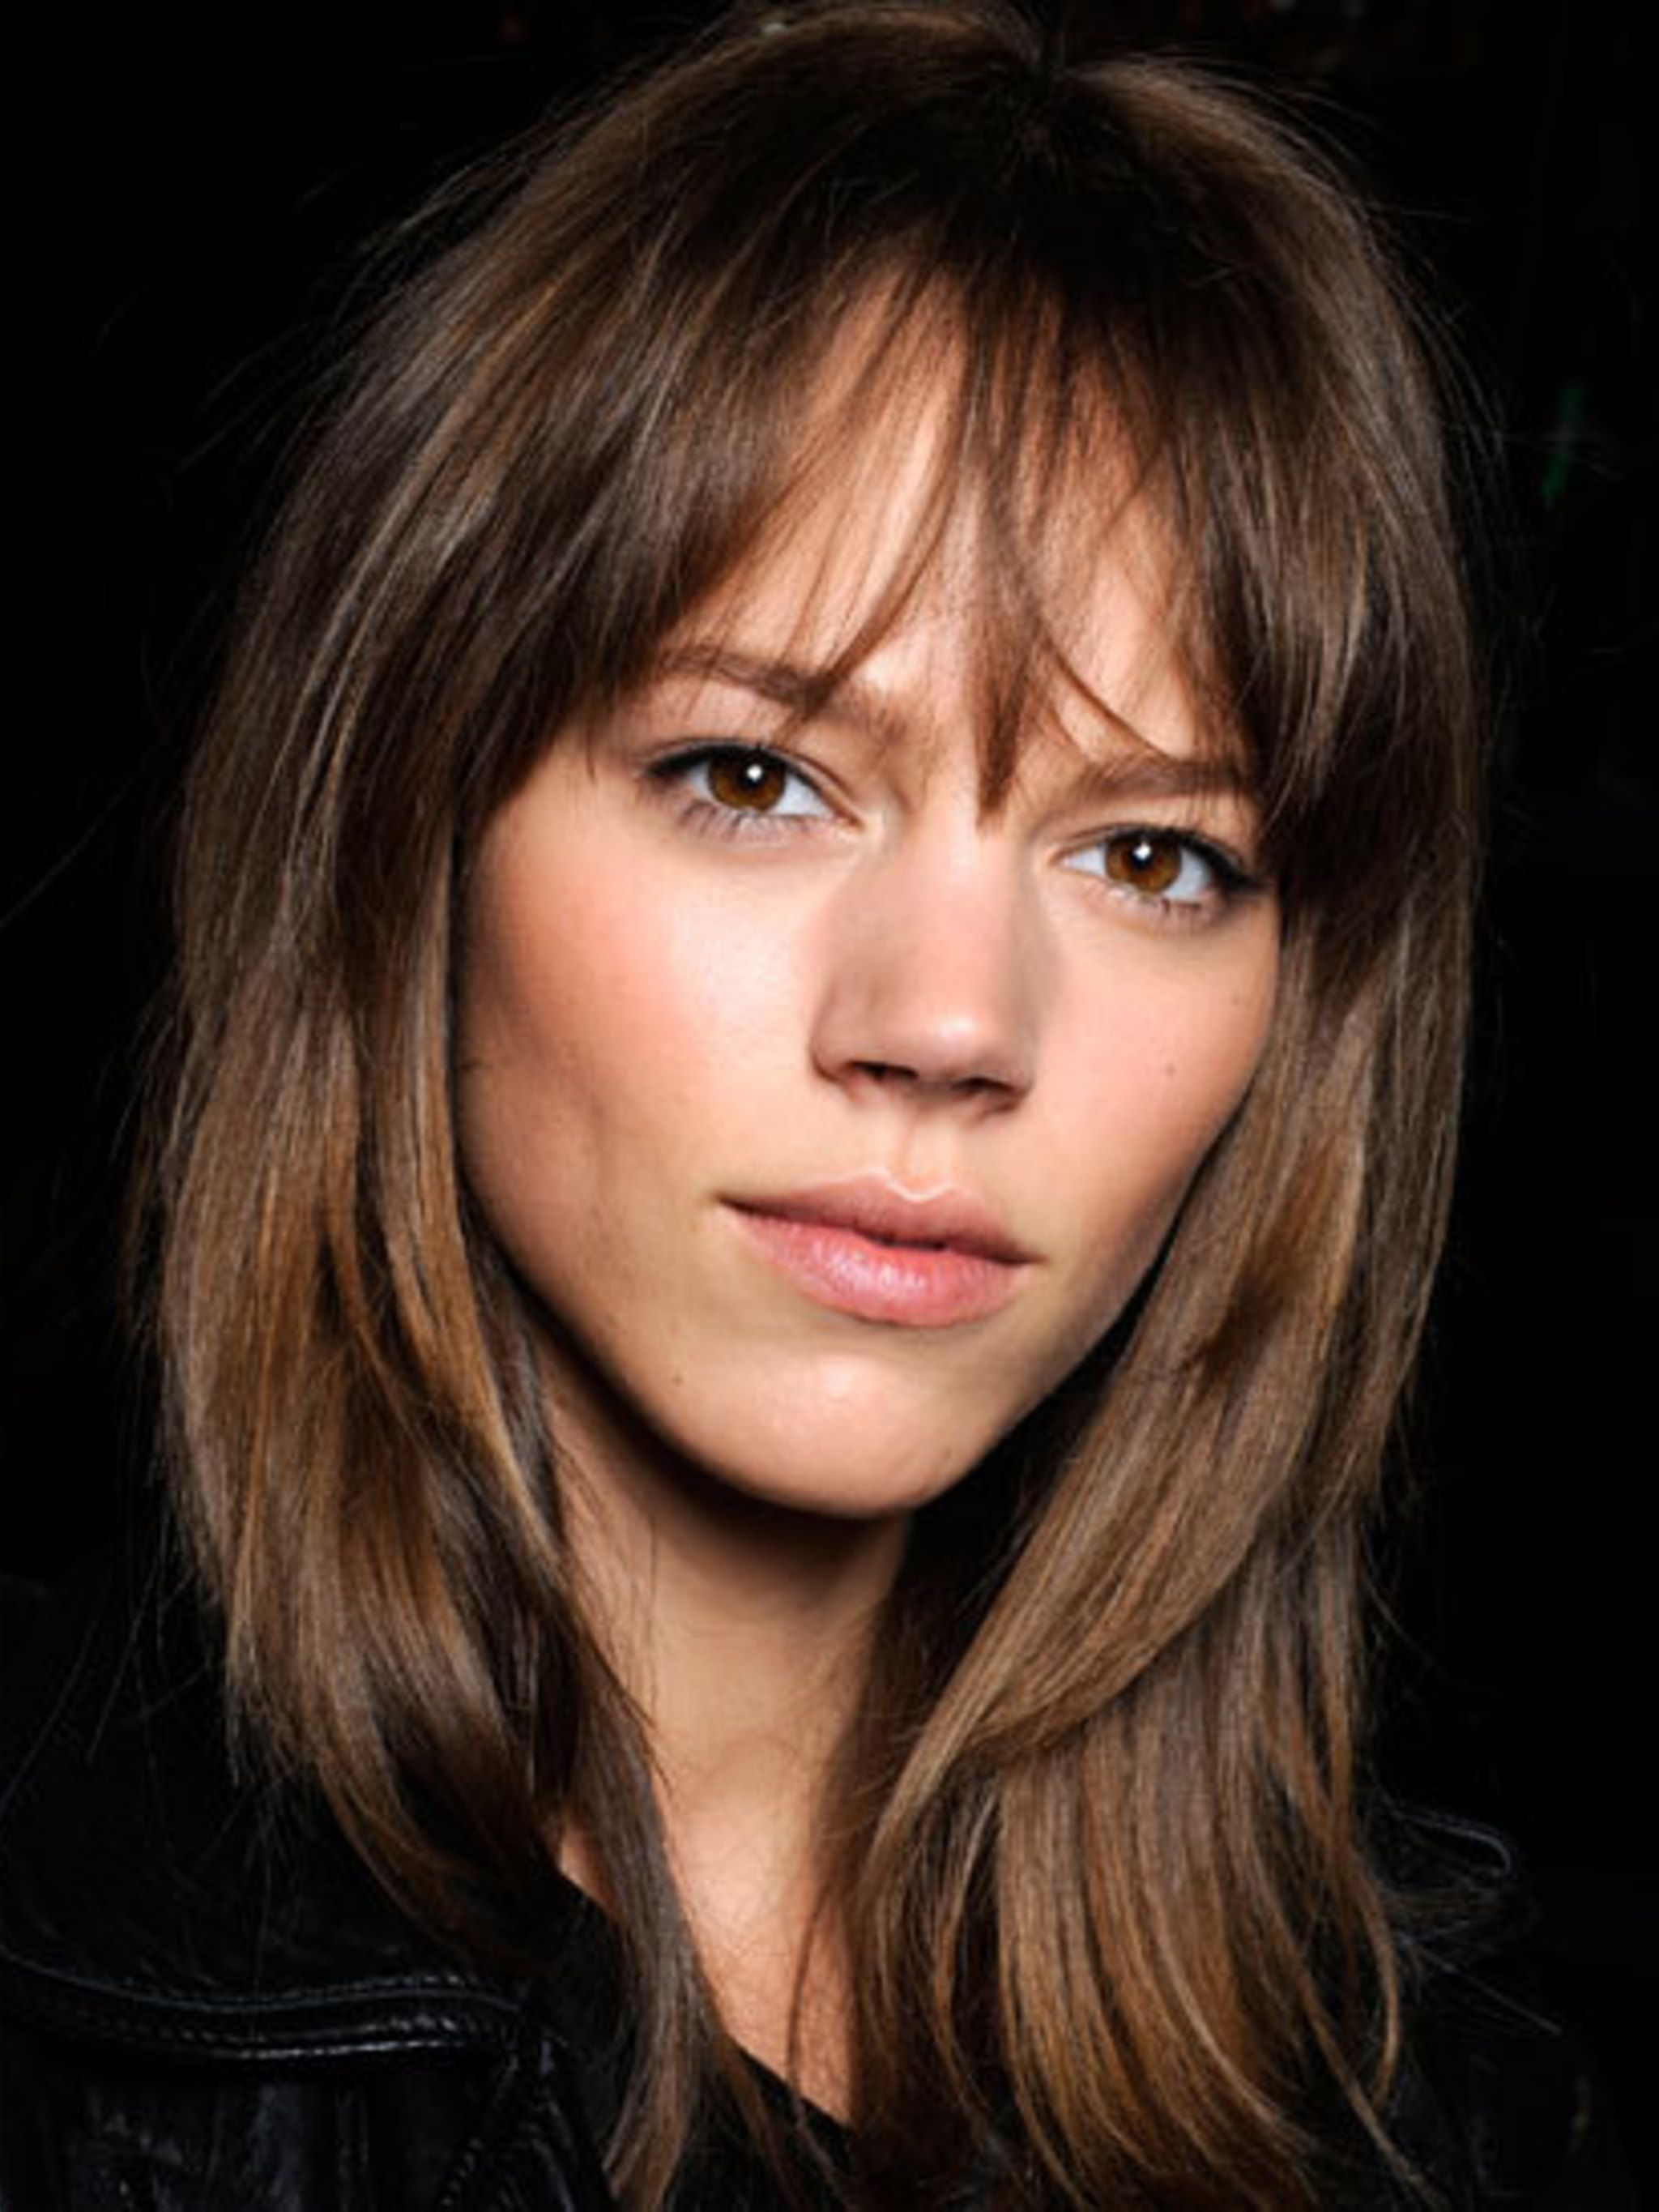 Topless Freja Beha Erichsen  nudes (31 photos), Facebook, swimsuit